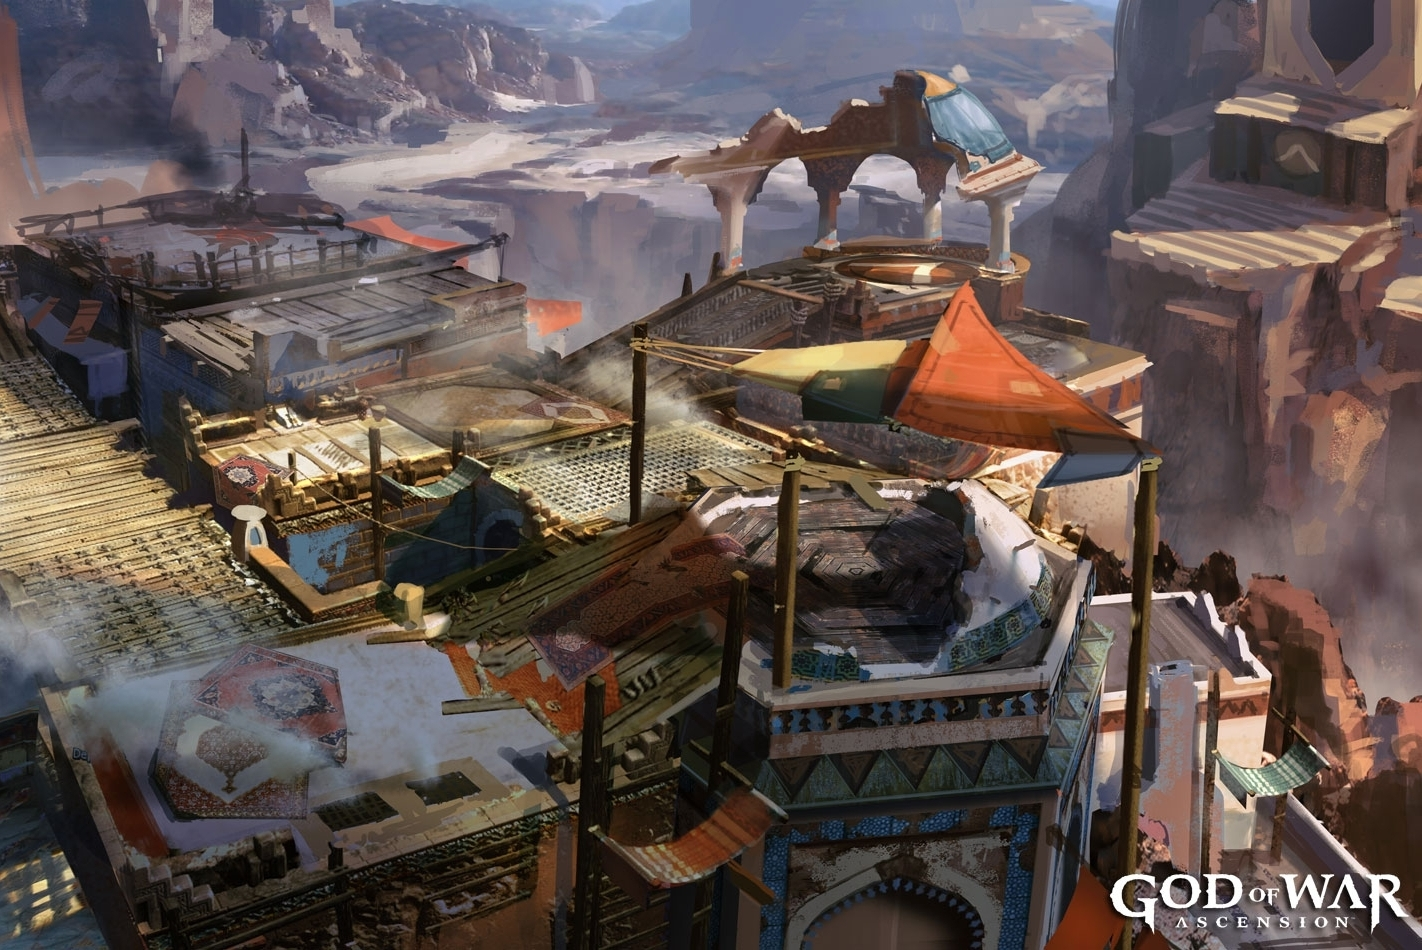 God of War: Ascension video game wallpapers • Wallpaper 1 of 220